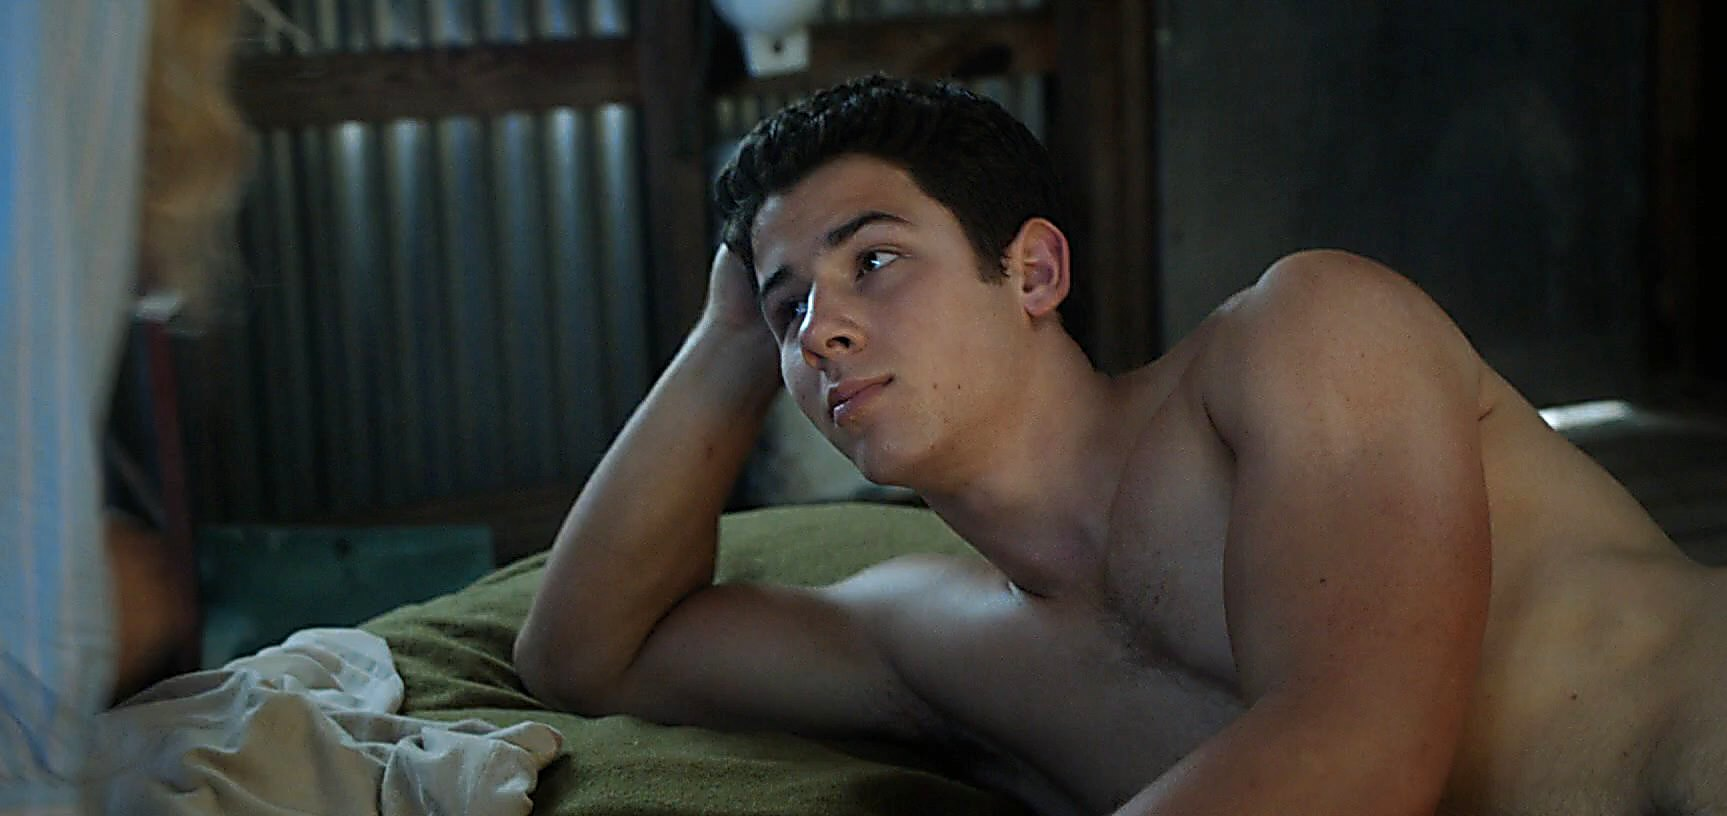 Nick Jonas sexy shirtless scene April 1, 2015, 3pm